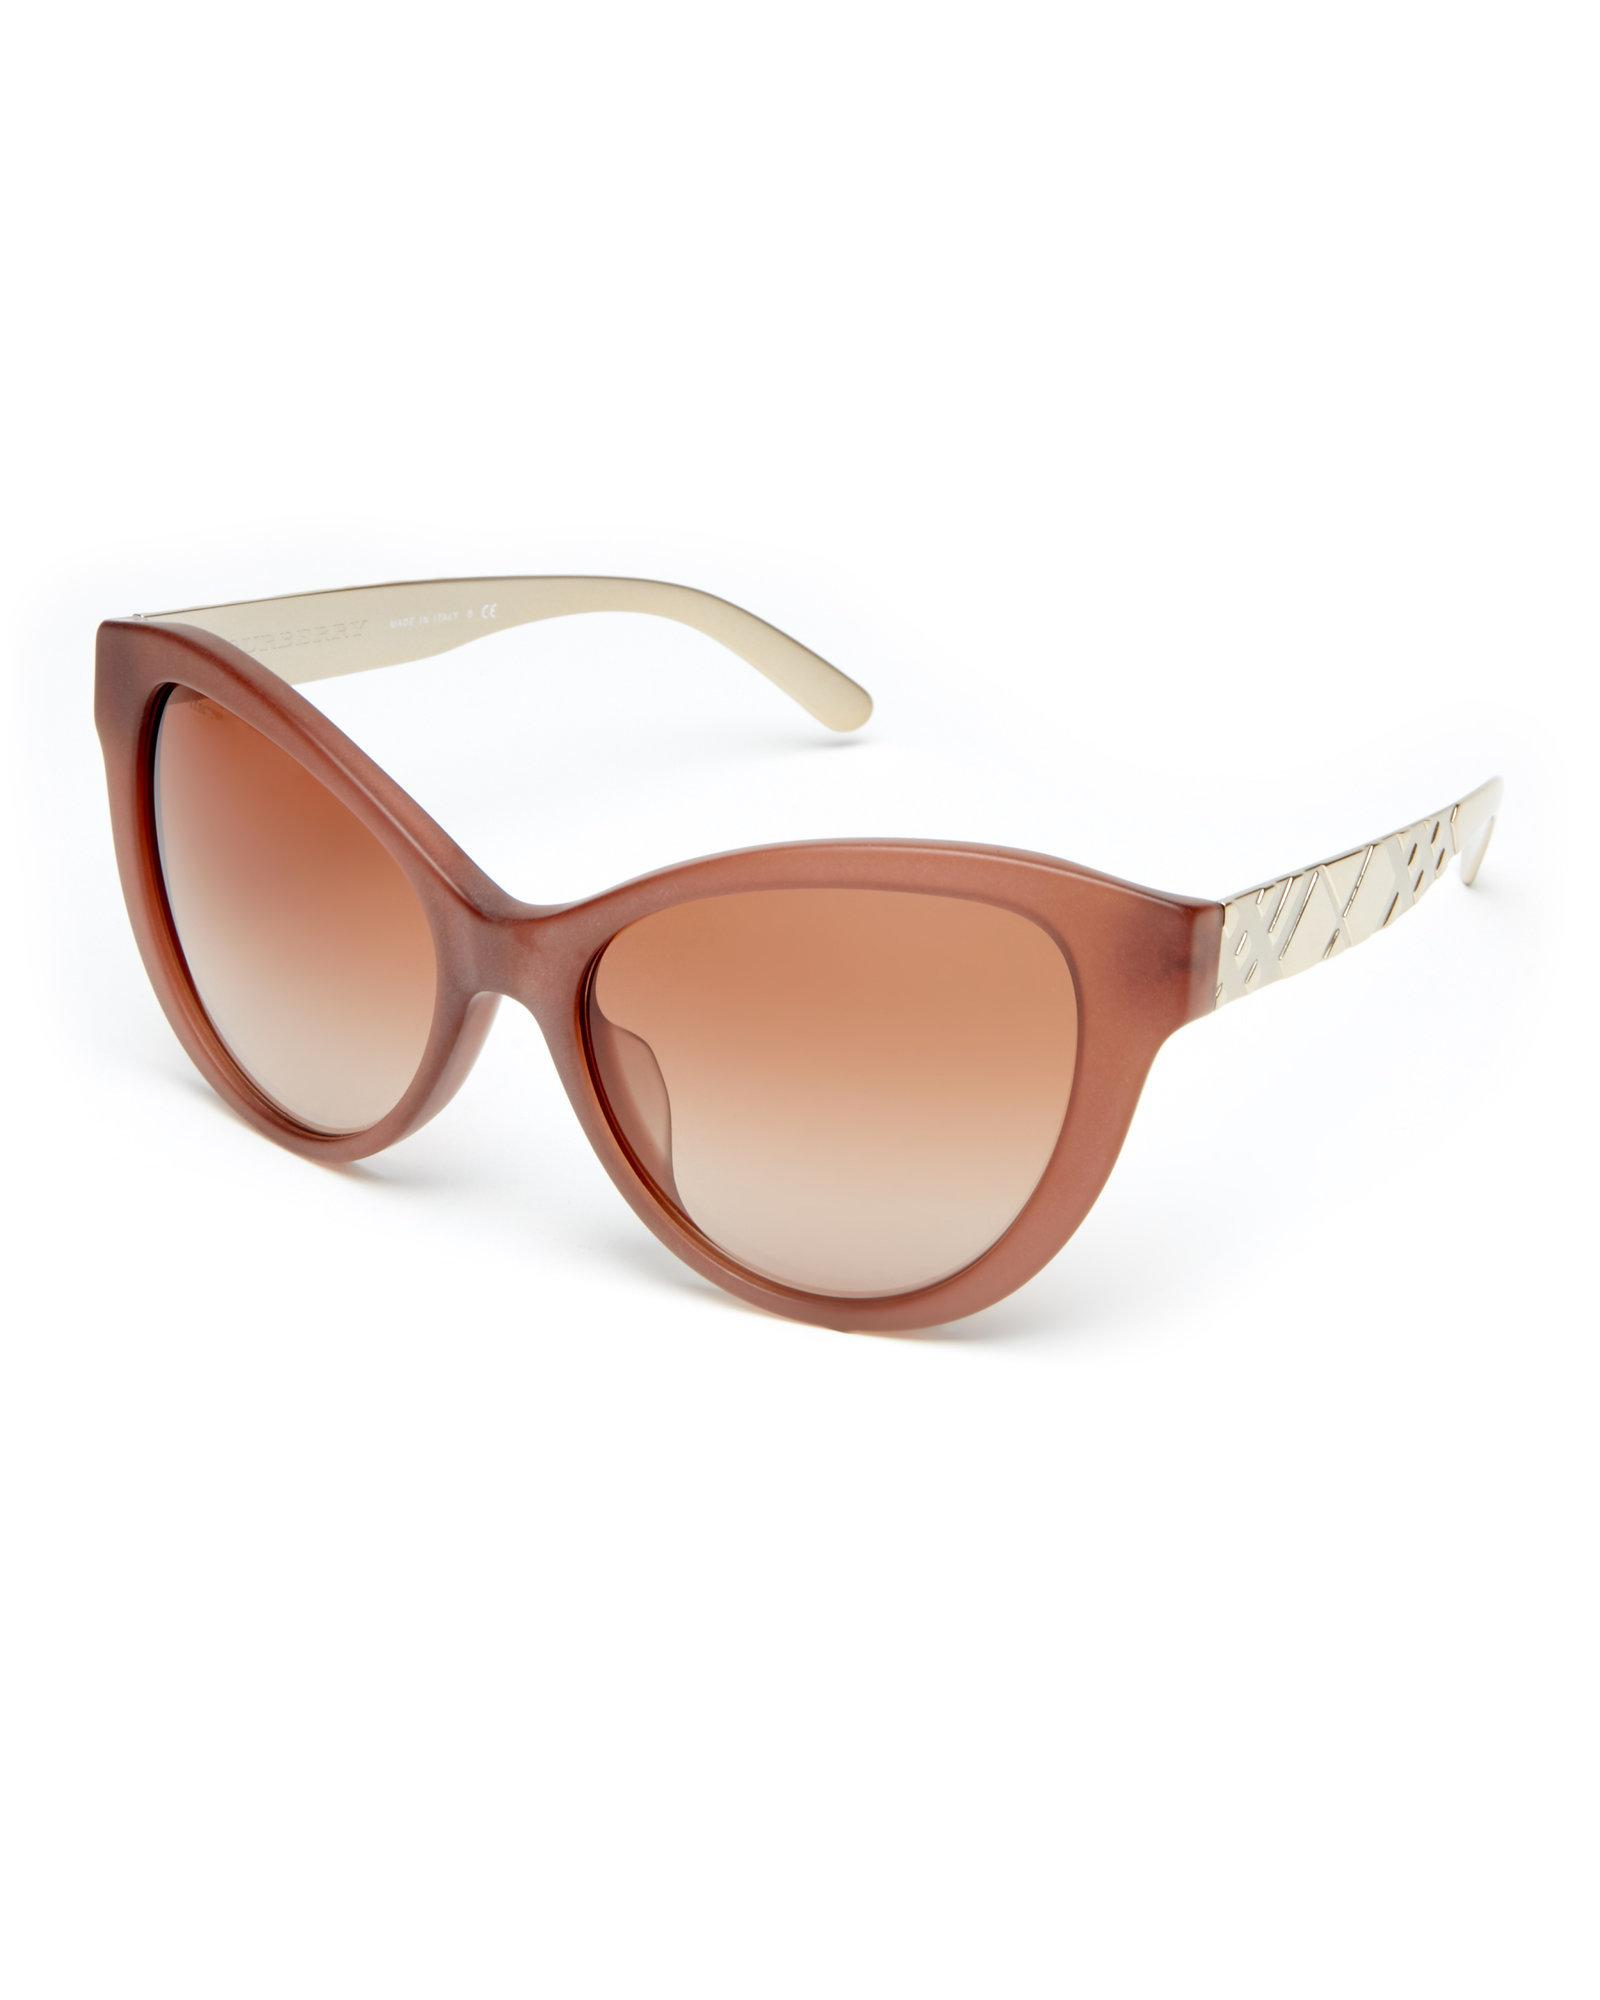 2ded391a19 Lyst - Burberry Be4220 Light Brown Cat Eye Sunglasses in Brown